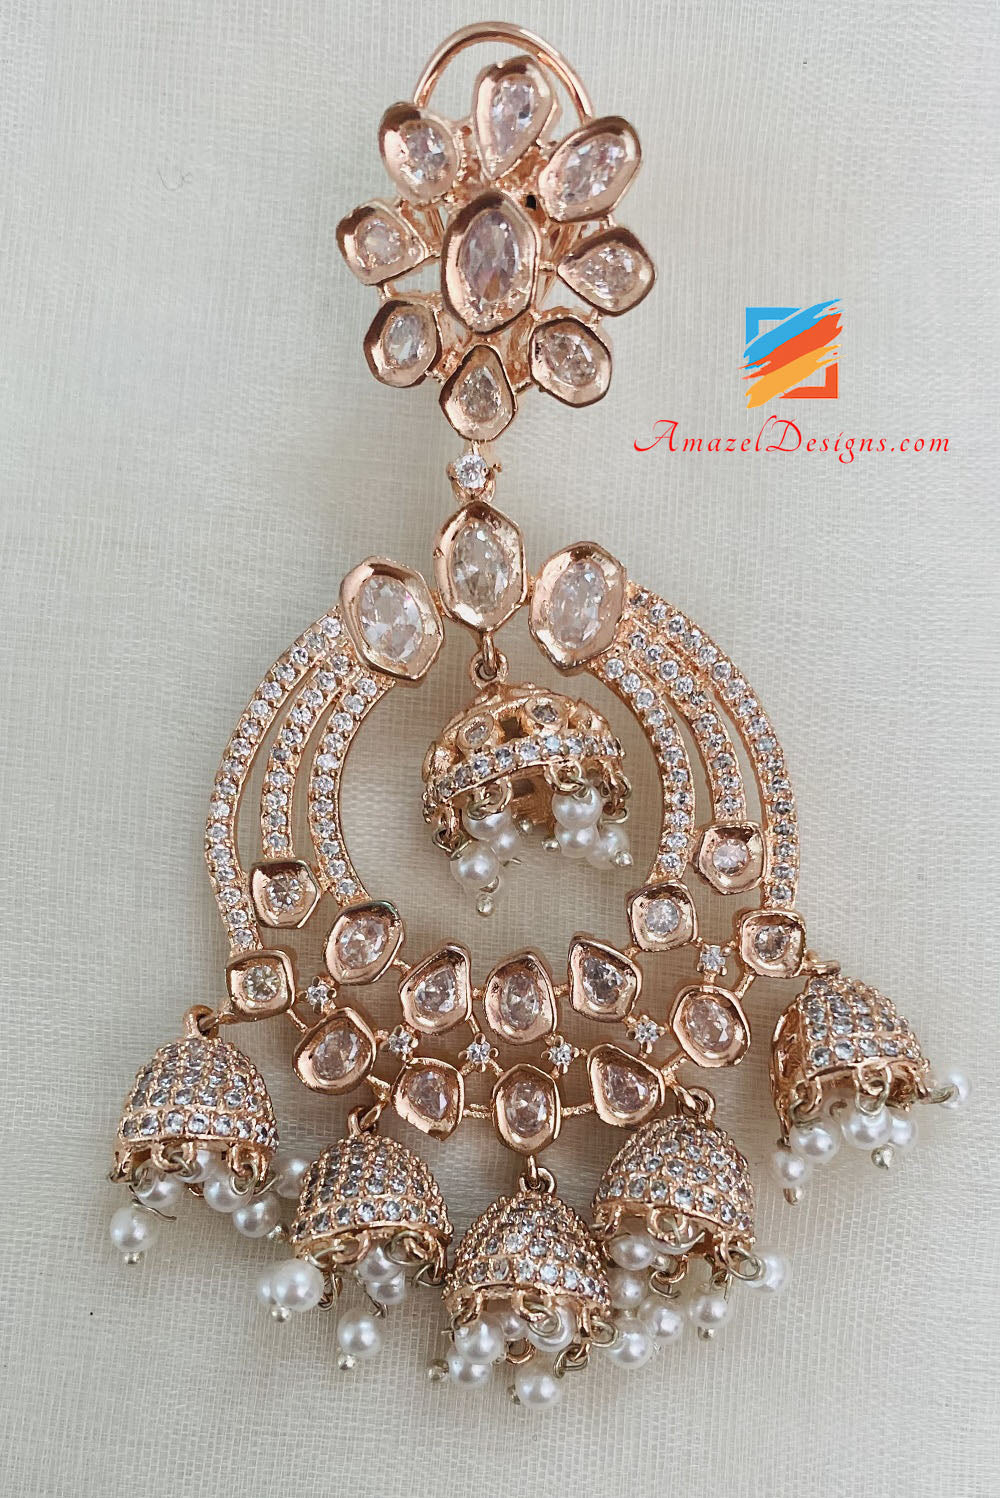 Rose Gold Earrings With Small Jhumkis On The Bottom